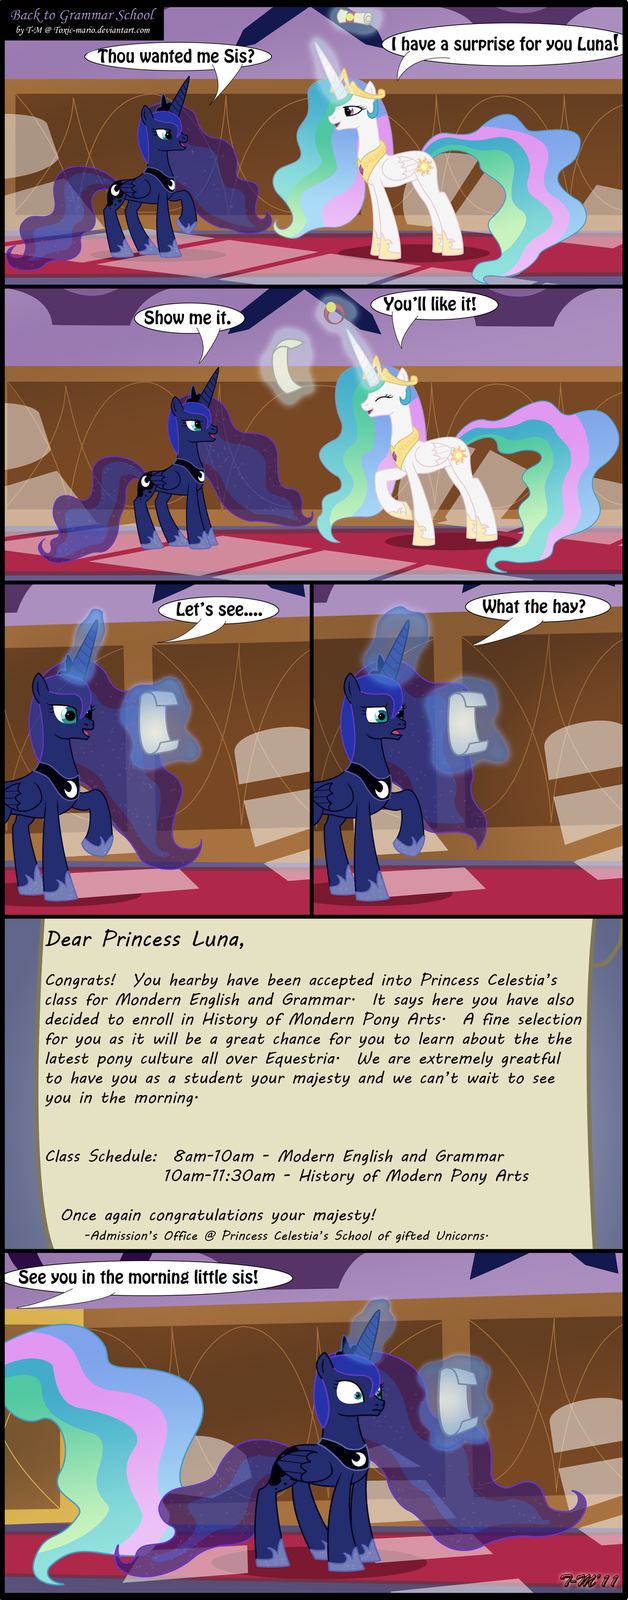 back_to_grammar_school_by_toxic_mario-d4eybe7.png